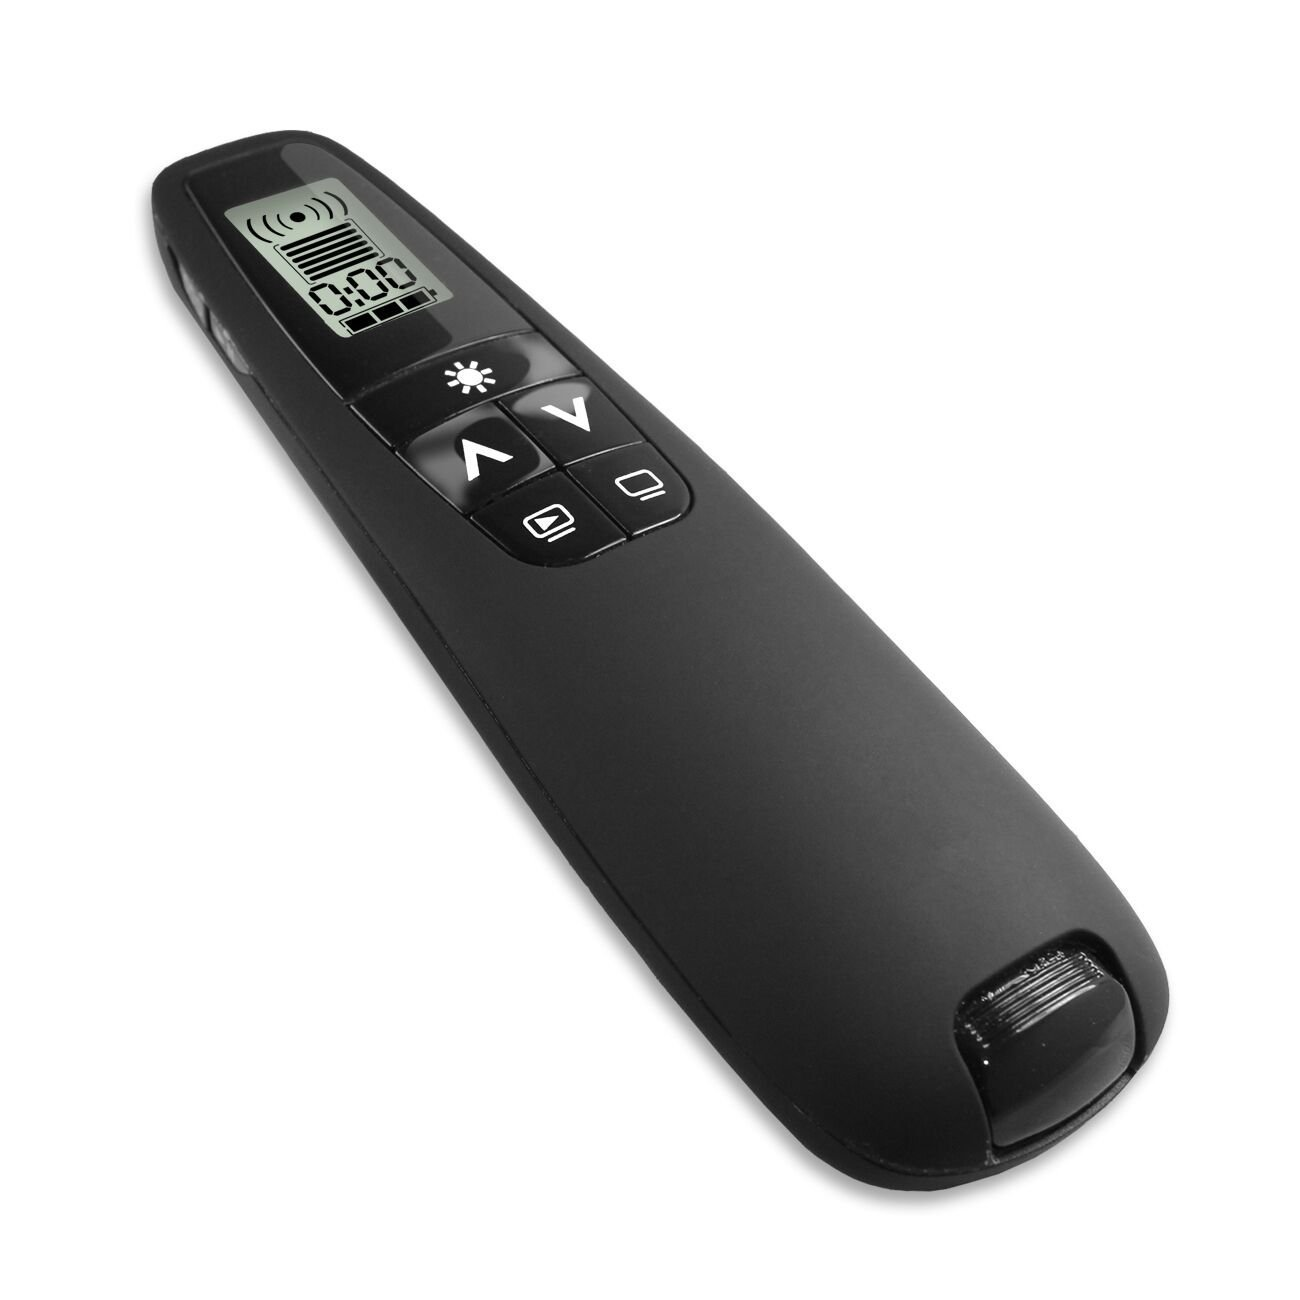 Clever Wireless Presenter Remote Control C850 Logitech R800 Ppt Laser Pointer Presentation With Green Compatible Mac And Pc